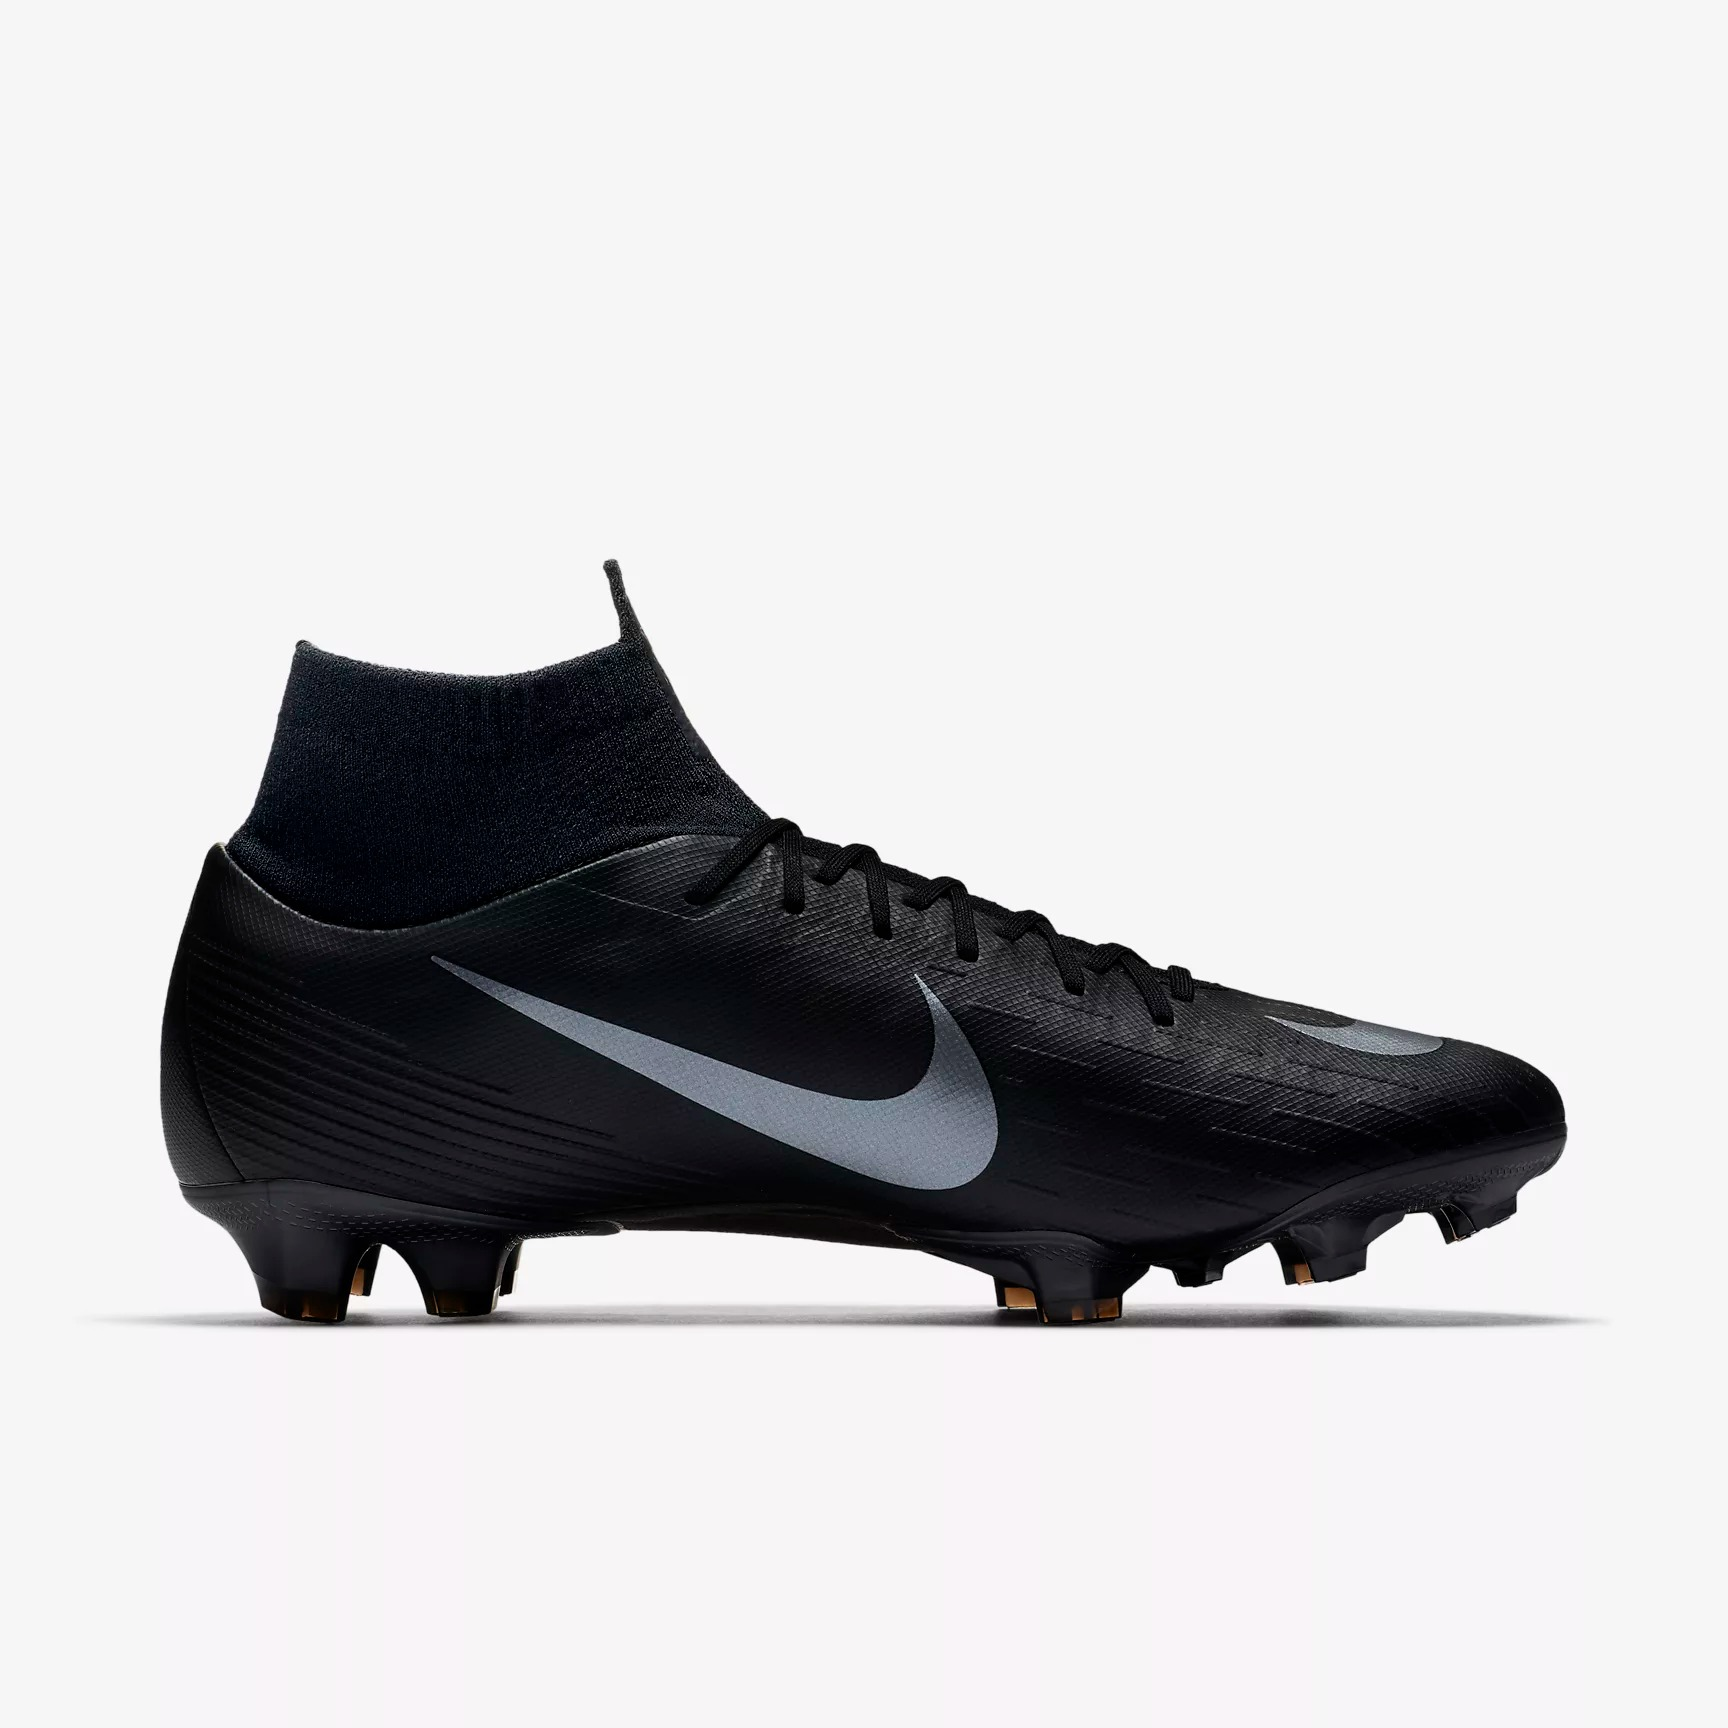 brand new 21ce7 6fb51 Nike Mercurial Superfly VI Pro FG Soccer Cleats - Soccer ...